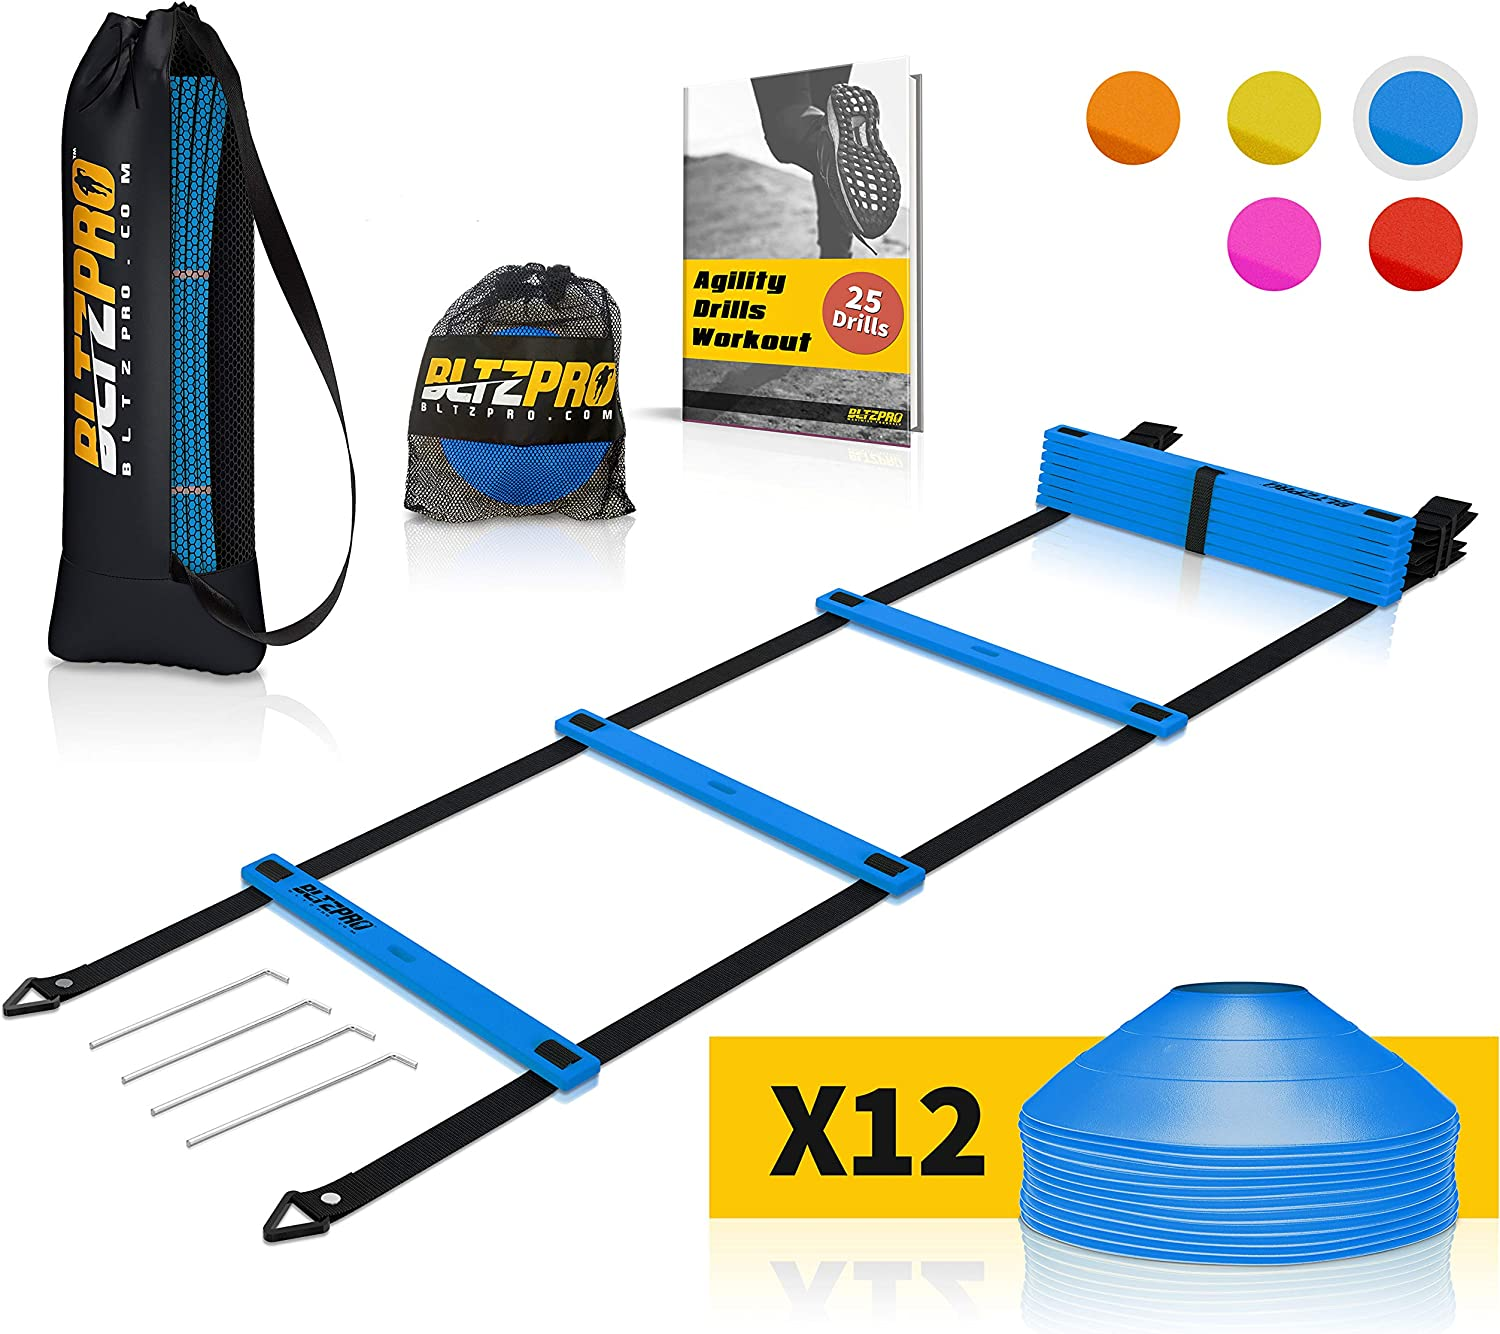 Bltzpro Football and Soccer Training Equipment – Cones Agility Ladder Speed Practice kit for Kids and Coaches – Conditioning and Footwork Workout Gear – Includes 2 Bags 24 Agility Drills eBook